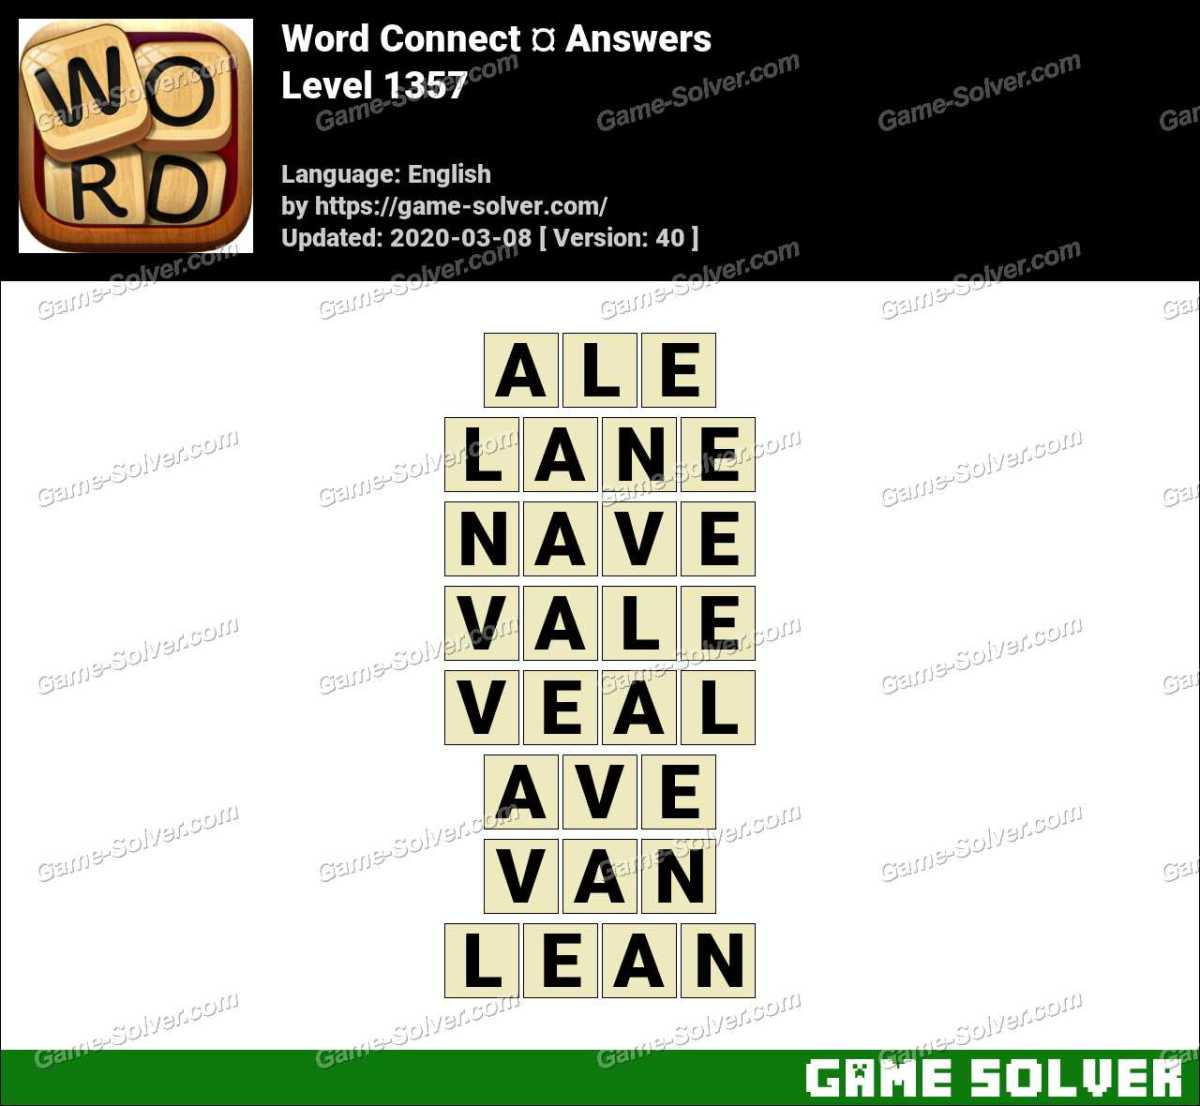 Word Connect Level 1357 Answers